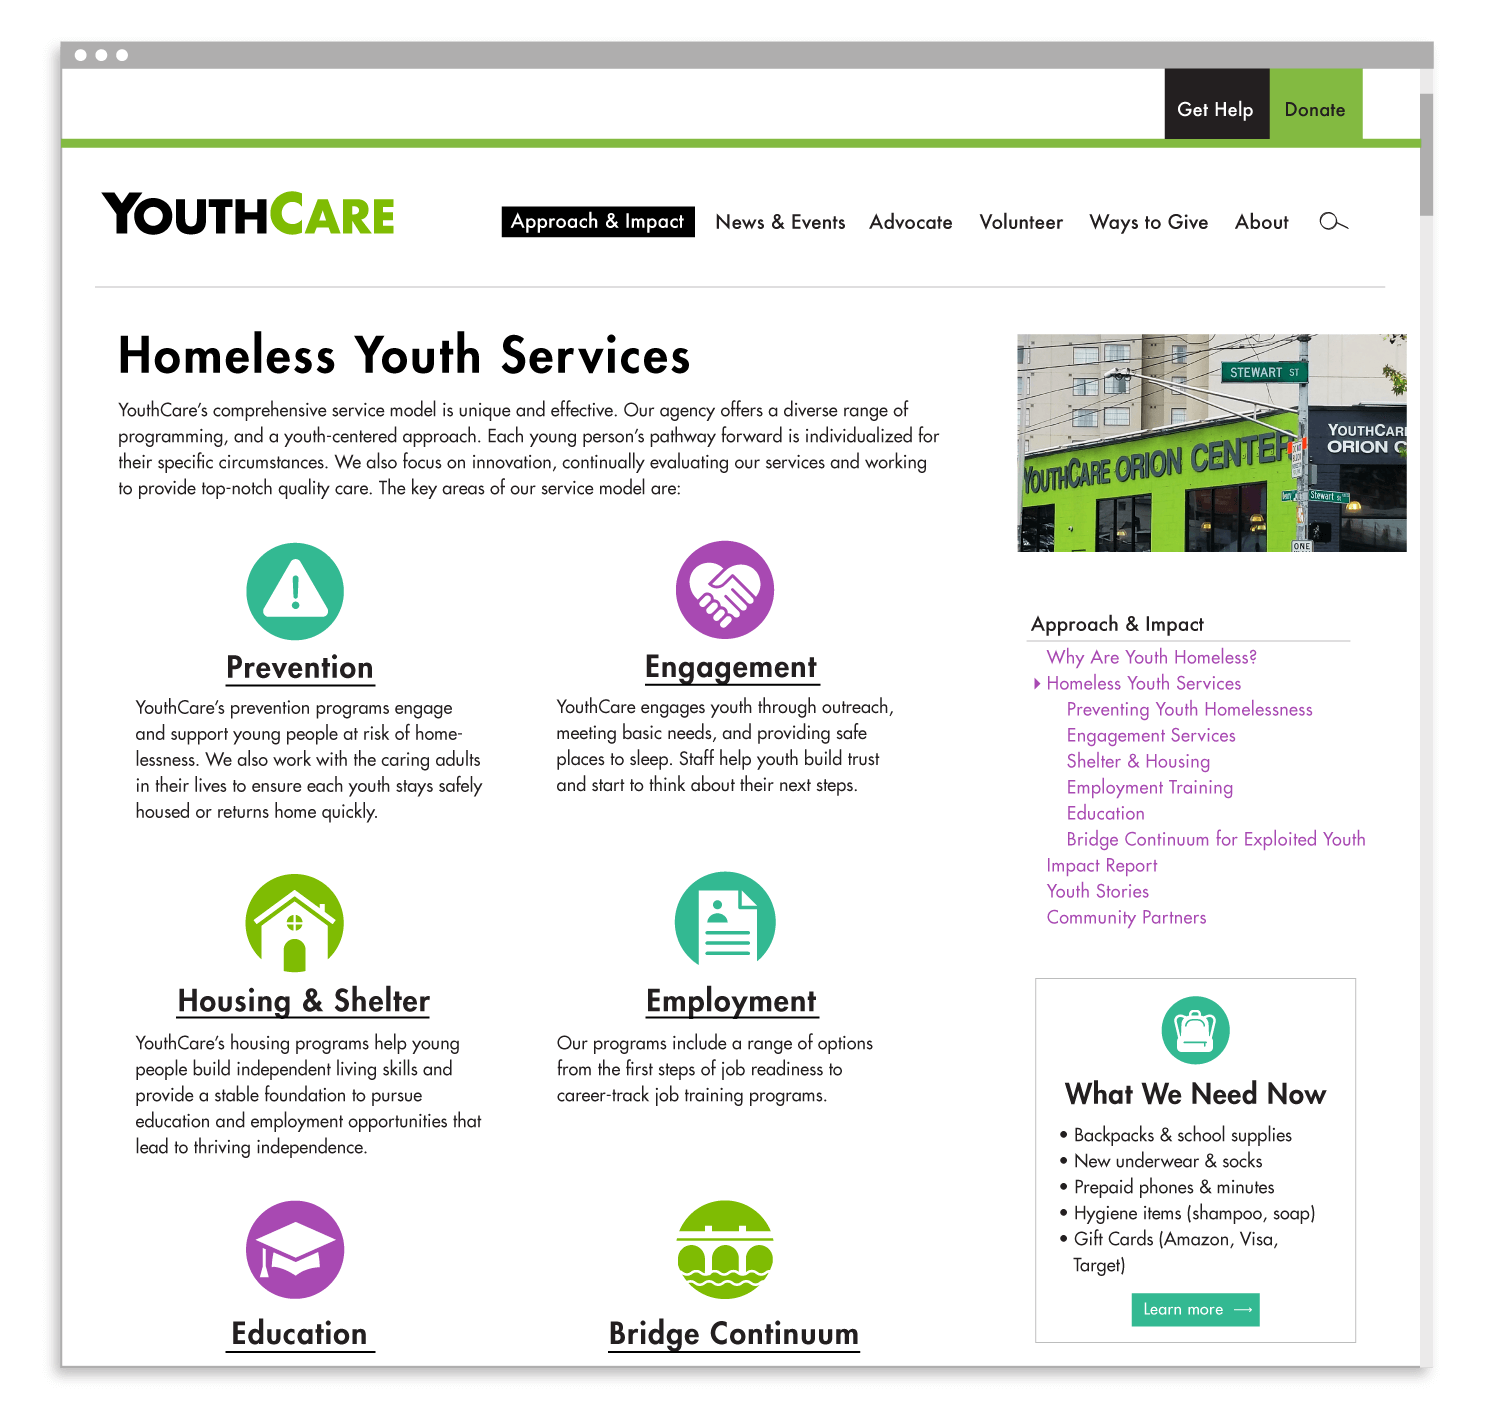 Kat-Marshello-YouthCare-Website-Design-HomelessYouth copy.png